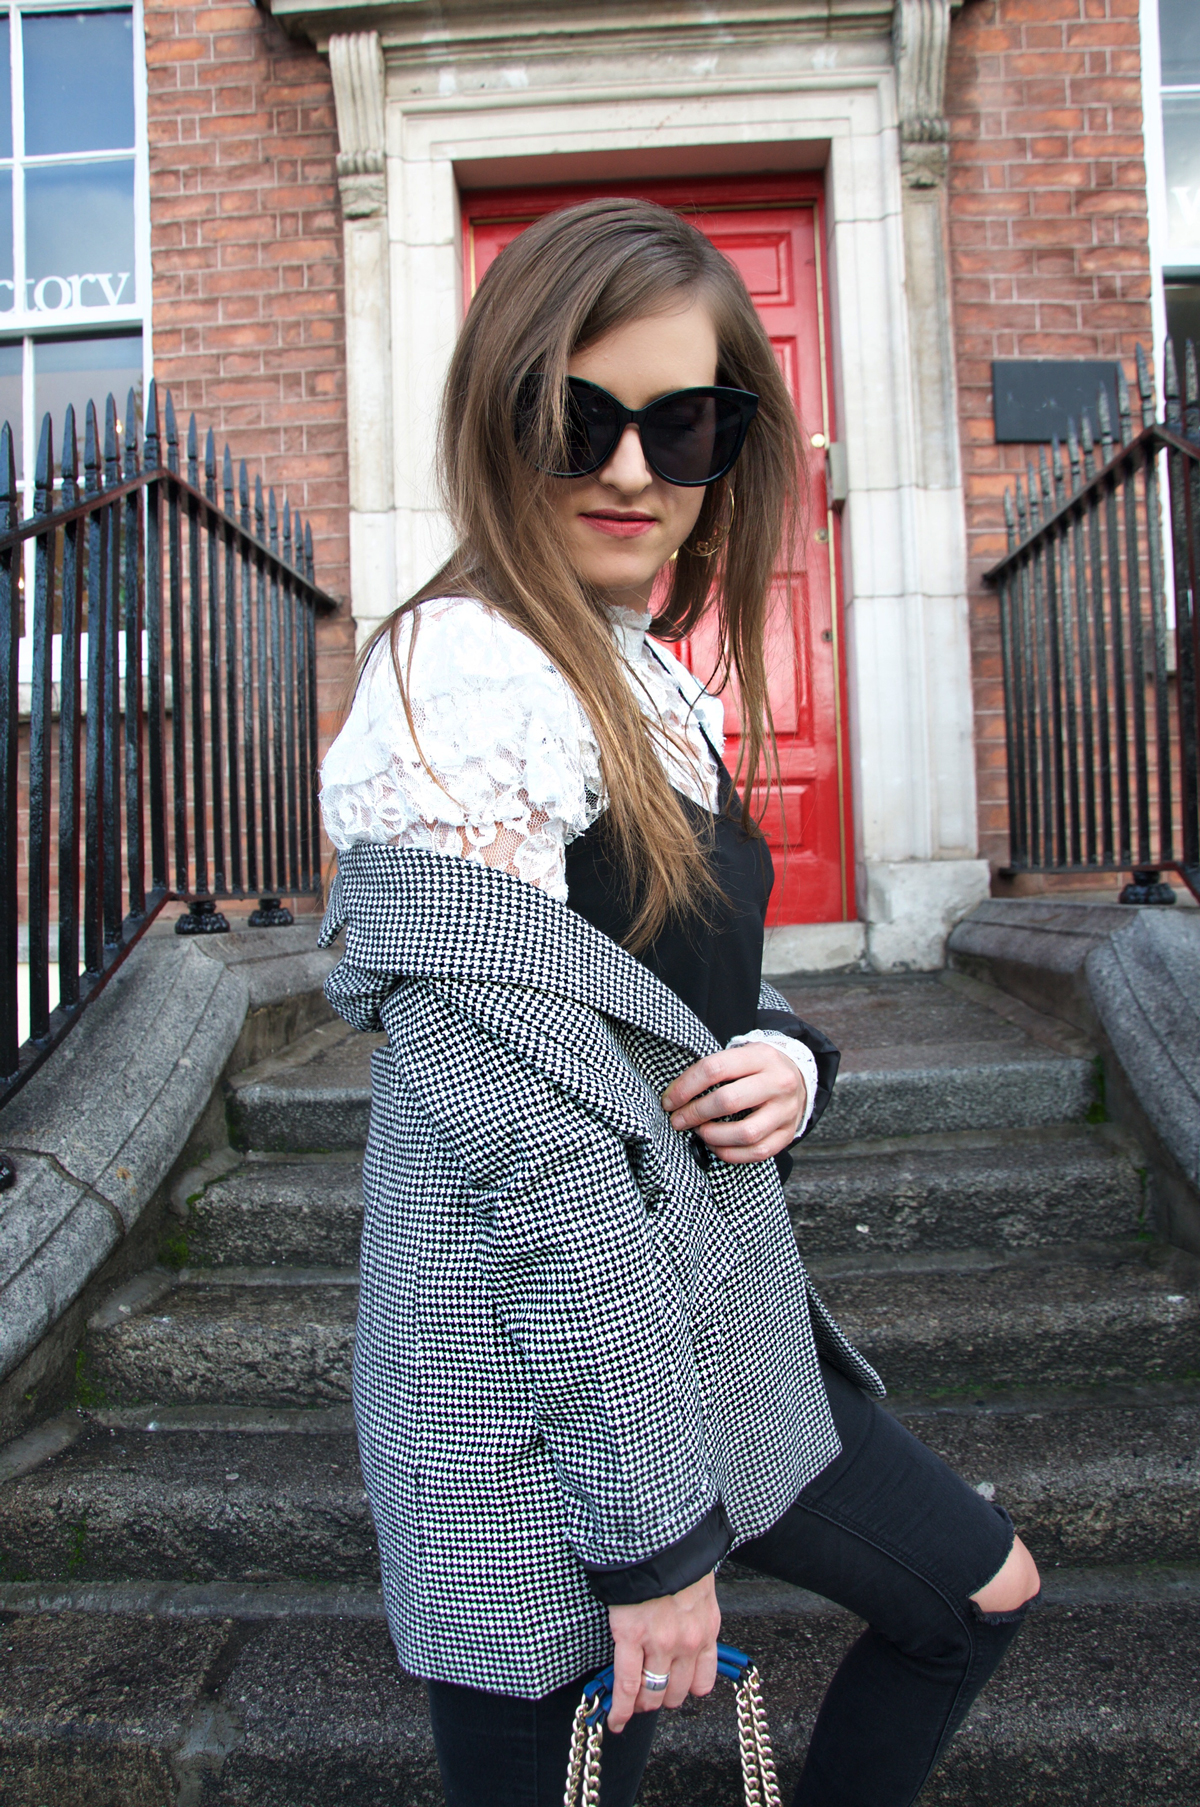 Mode blog, Strawberries 'n' Champagne von Andrea Steiner sagt, was Sie am Layering-Look liebt.